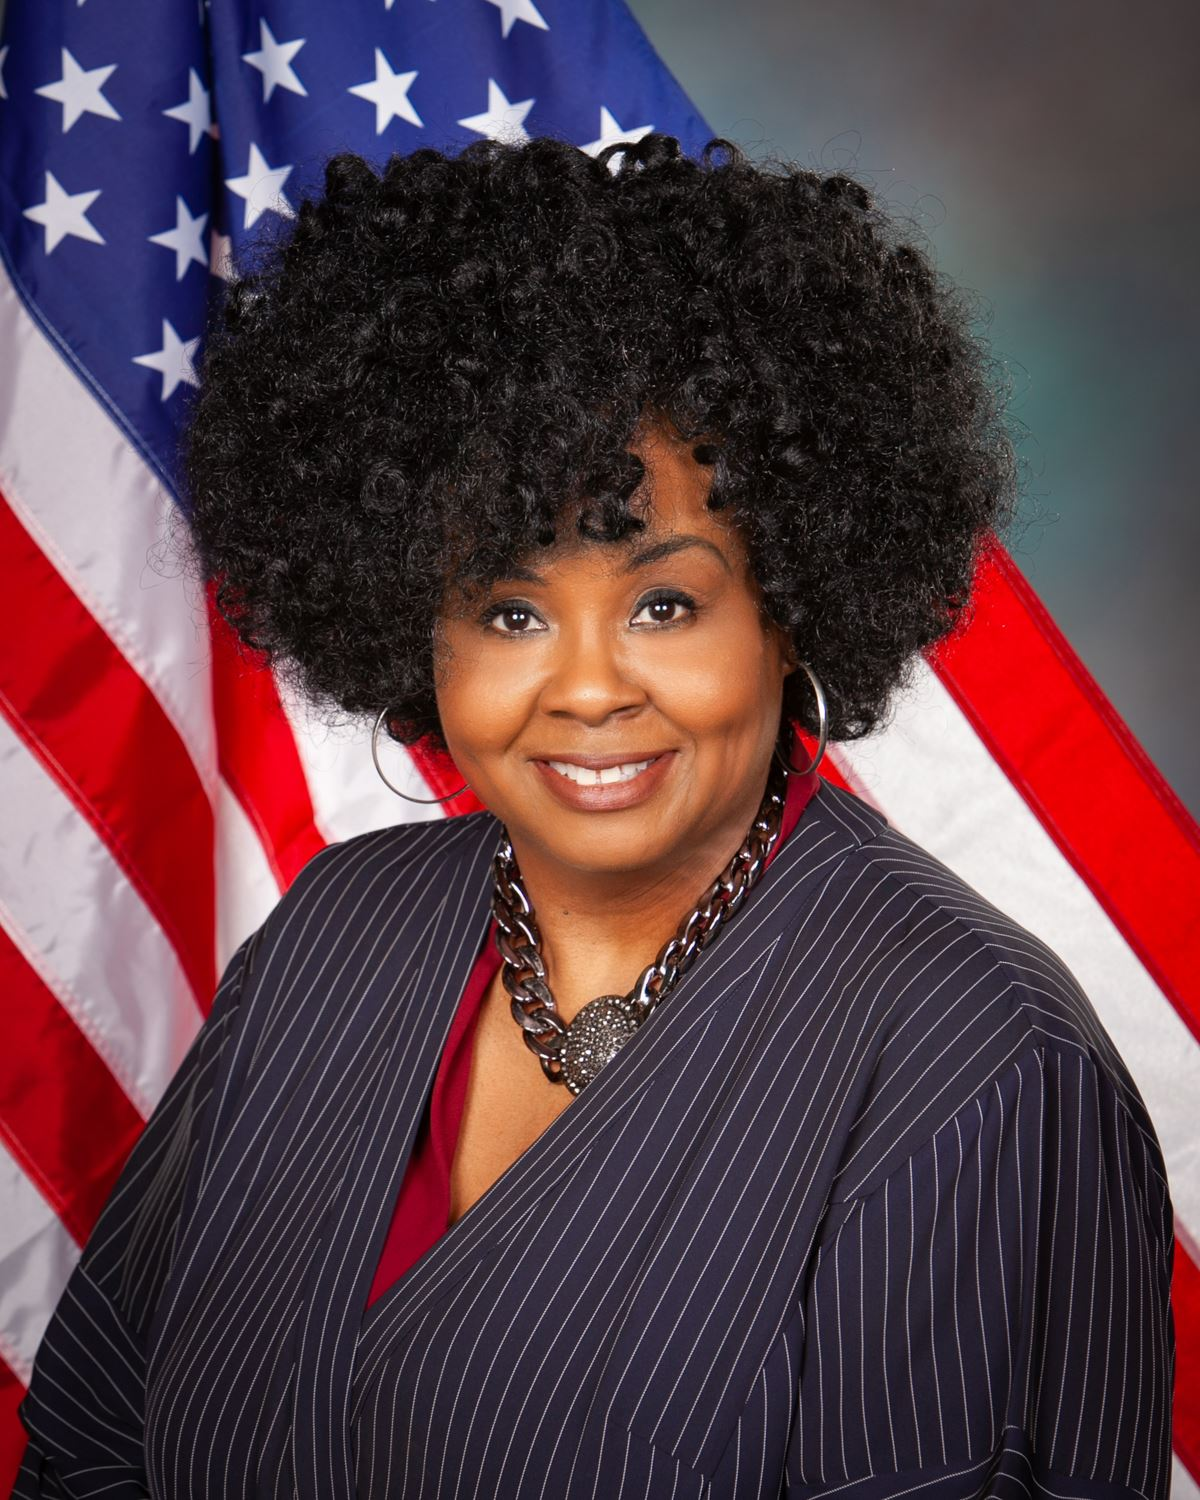 Photo of DeSoto's new Interim City Manager Renee Johnson